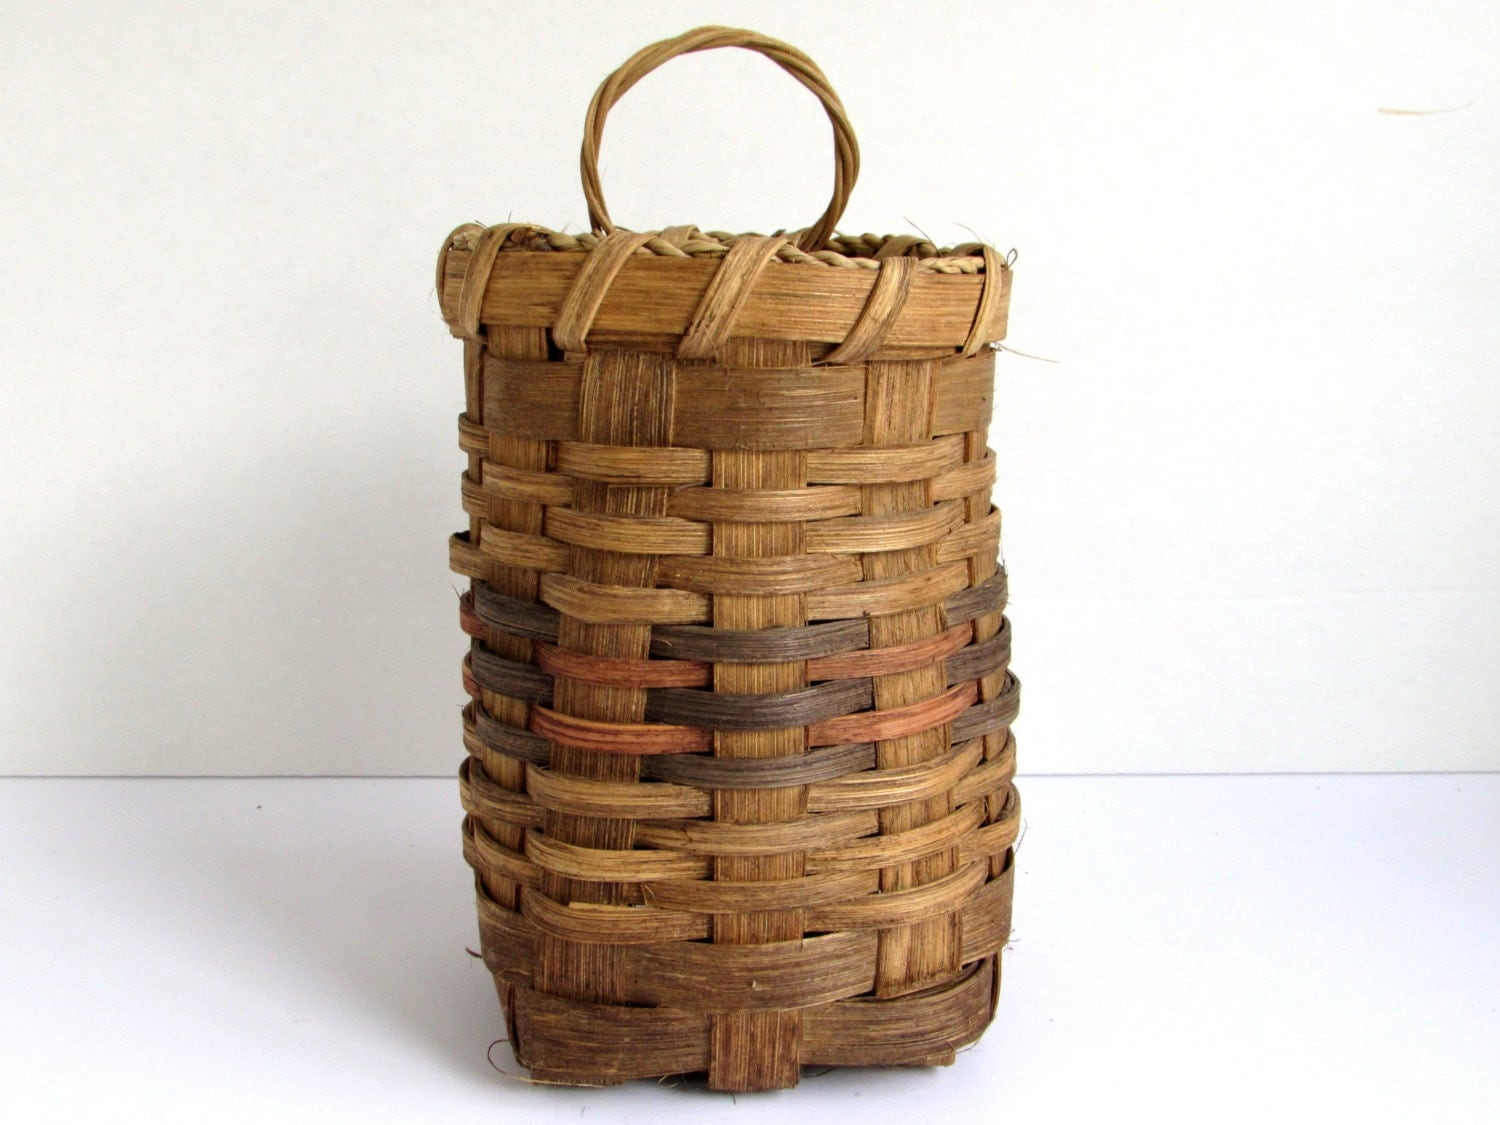 Tiny Wicker Basket With Handle : Vintage wicker basket small woven with handle artisan